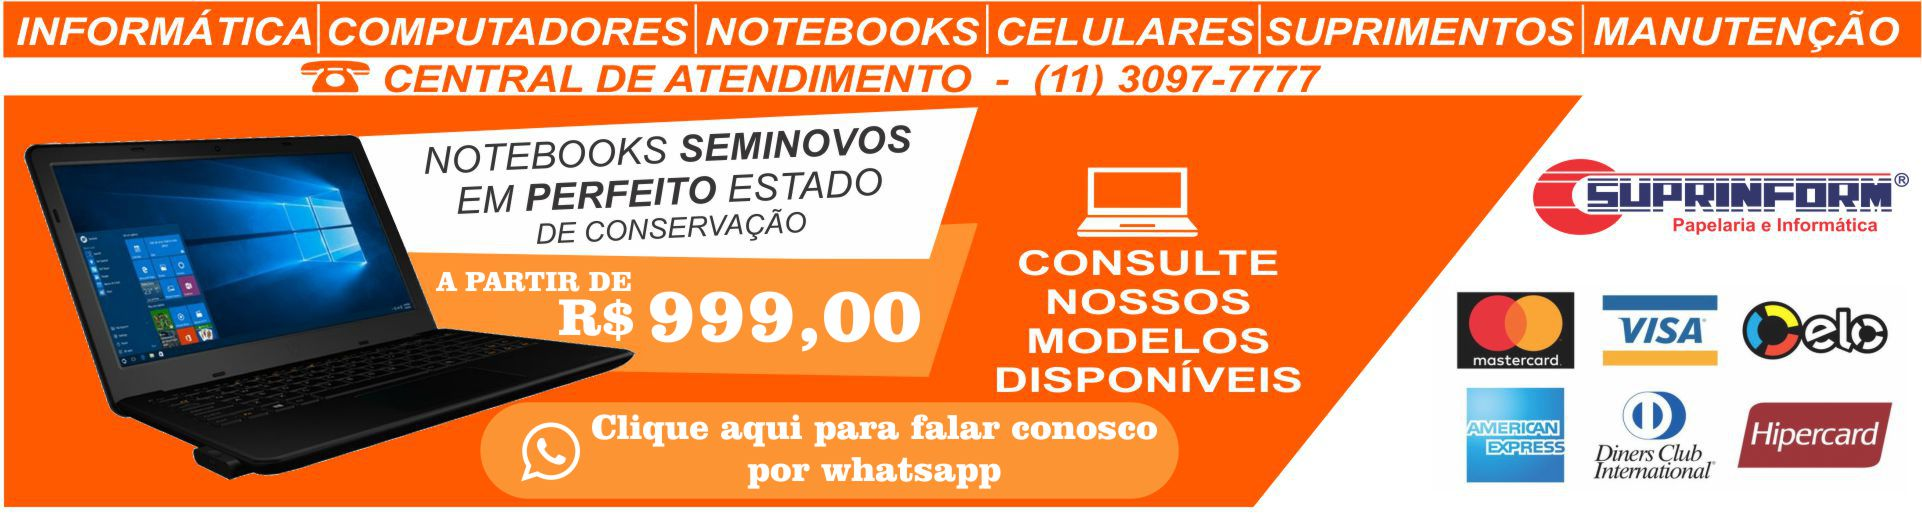 banner-notebooks-seminovos